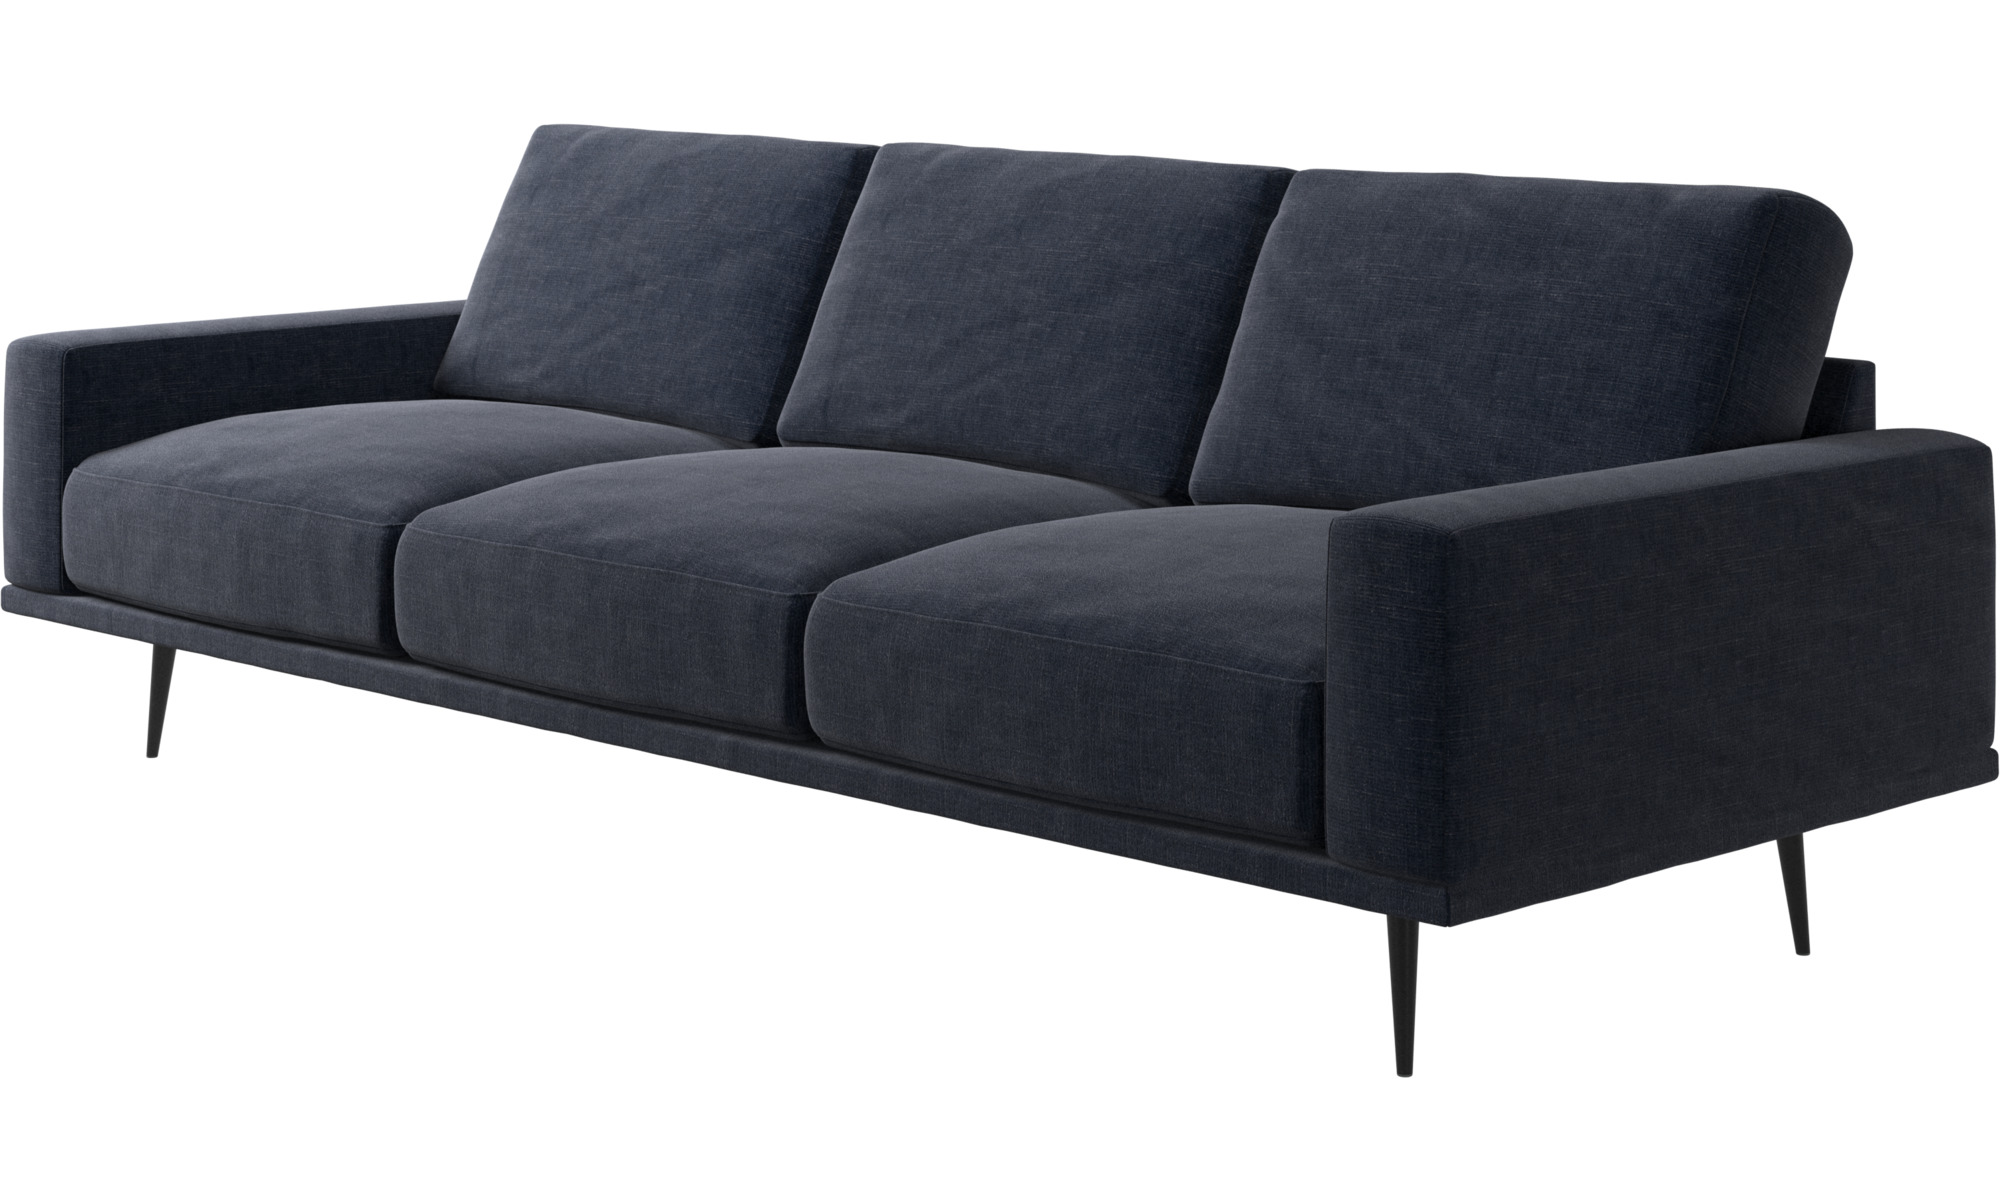 3 sitzer sofas carlton sofa boconcept. Black Bedroom Furniture Sets. Home Design Ideas